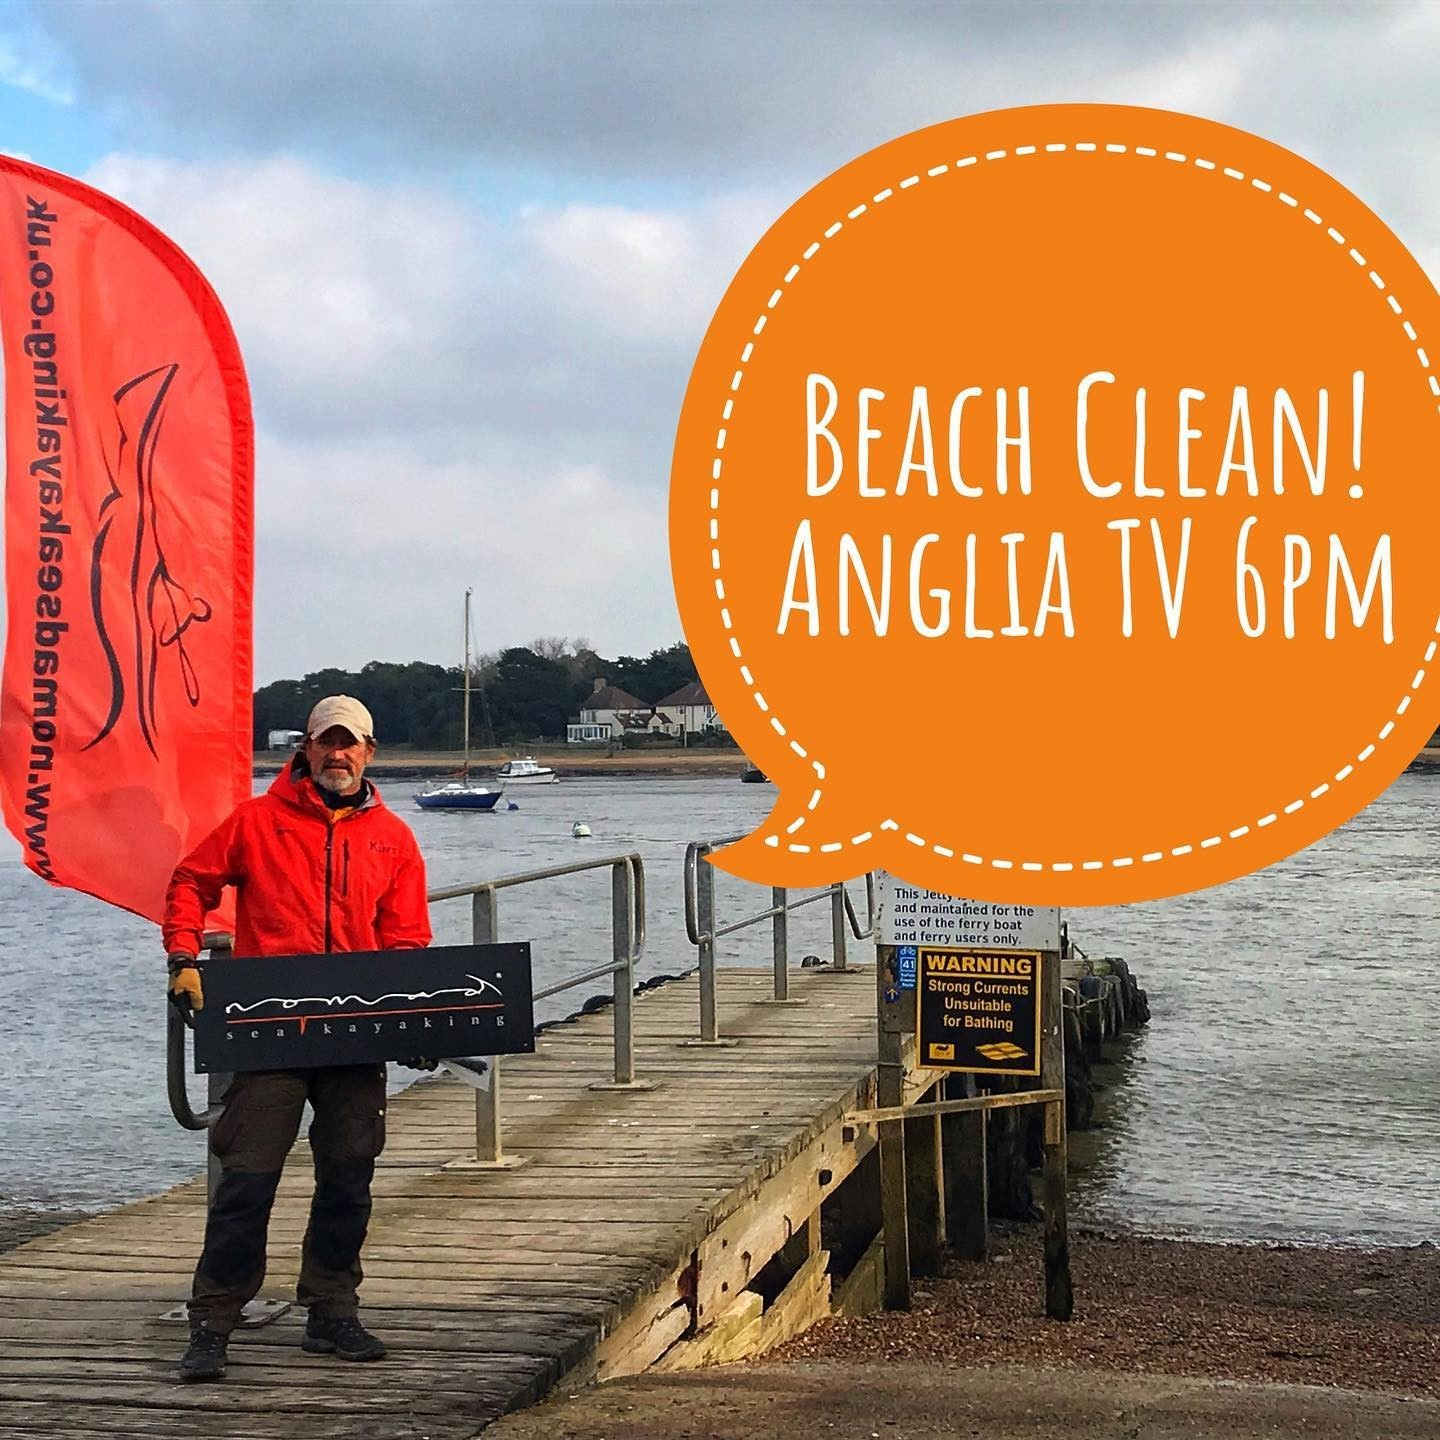 Beach clean in Felixstowe Ferry on Anglia TV